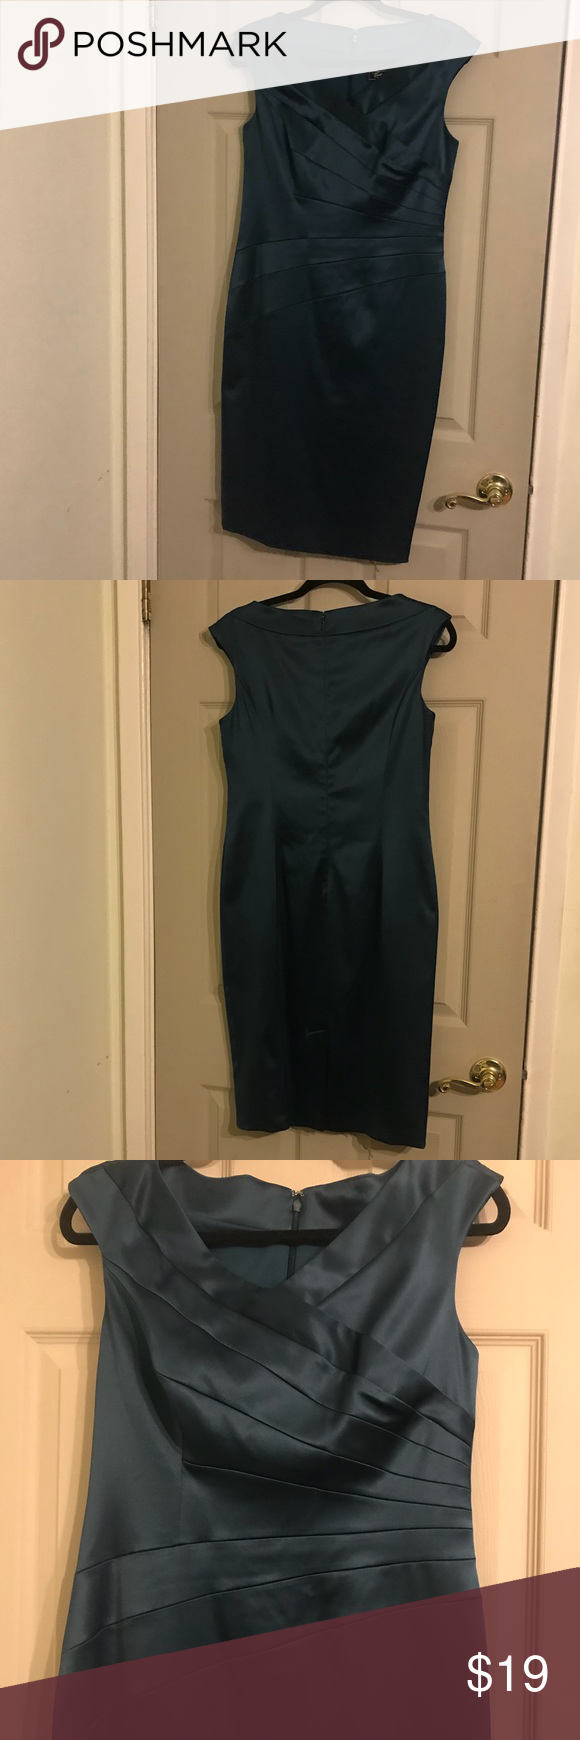 Dressbarn Collection Classy Dark Teal Dress (With images